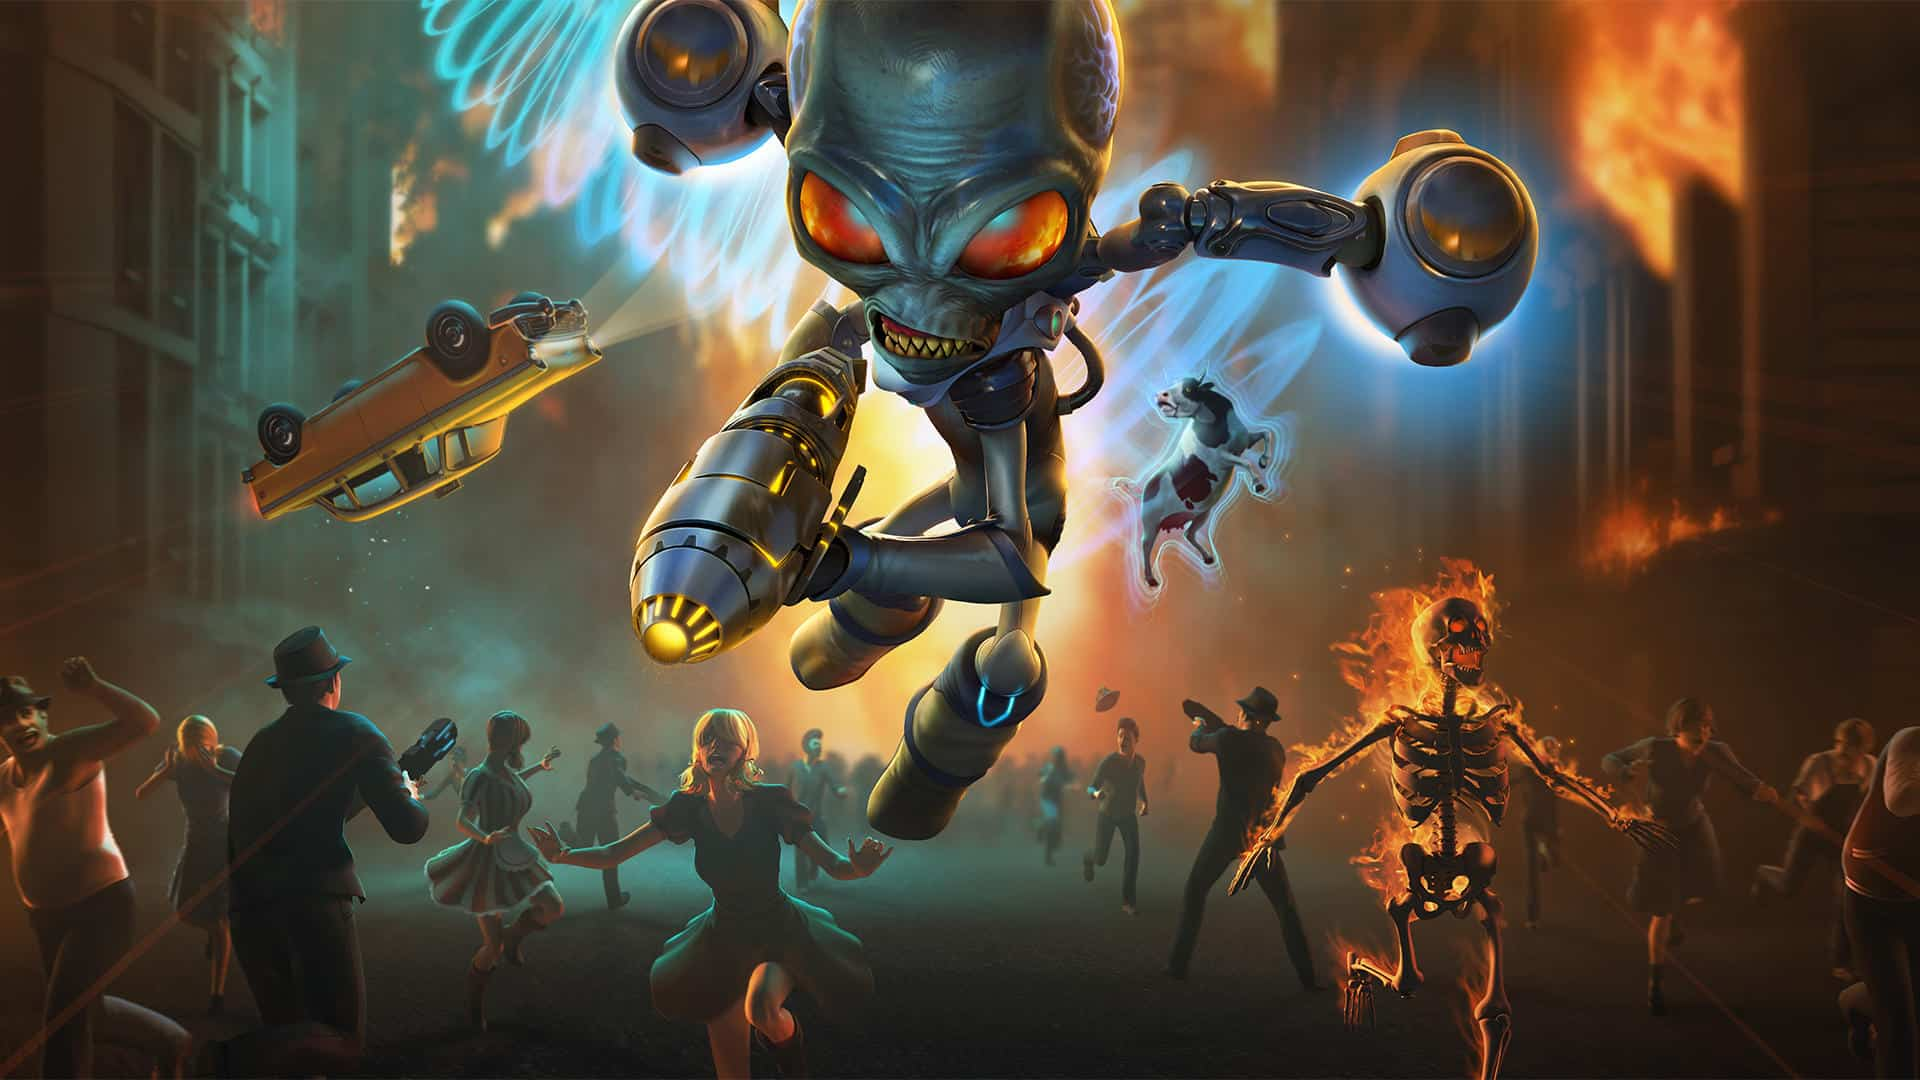 The Destroy All Humans!